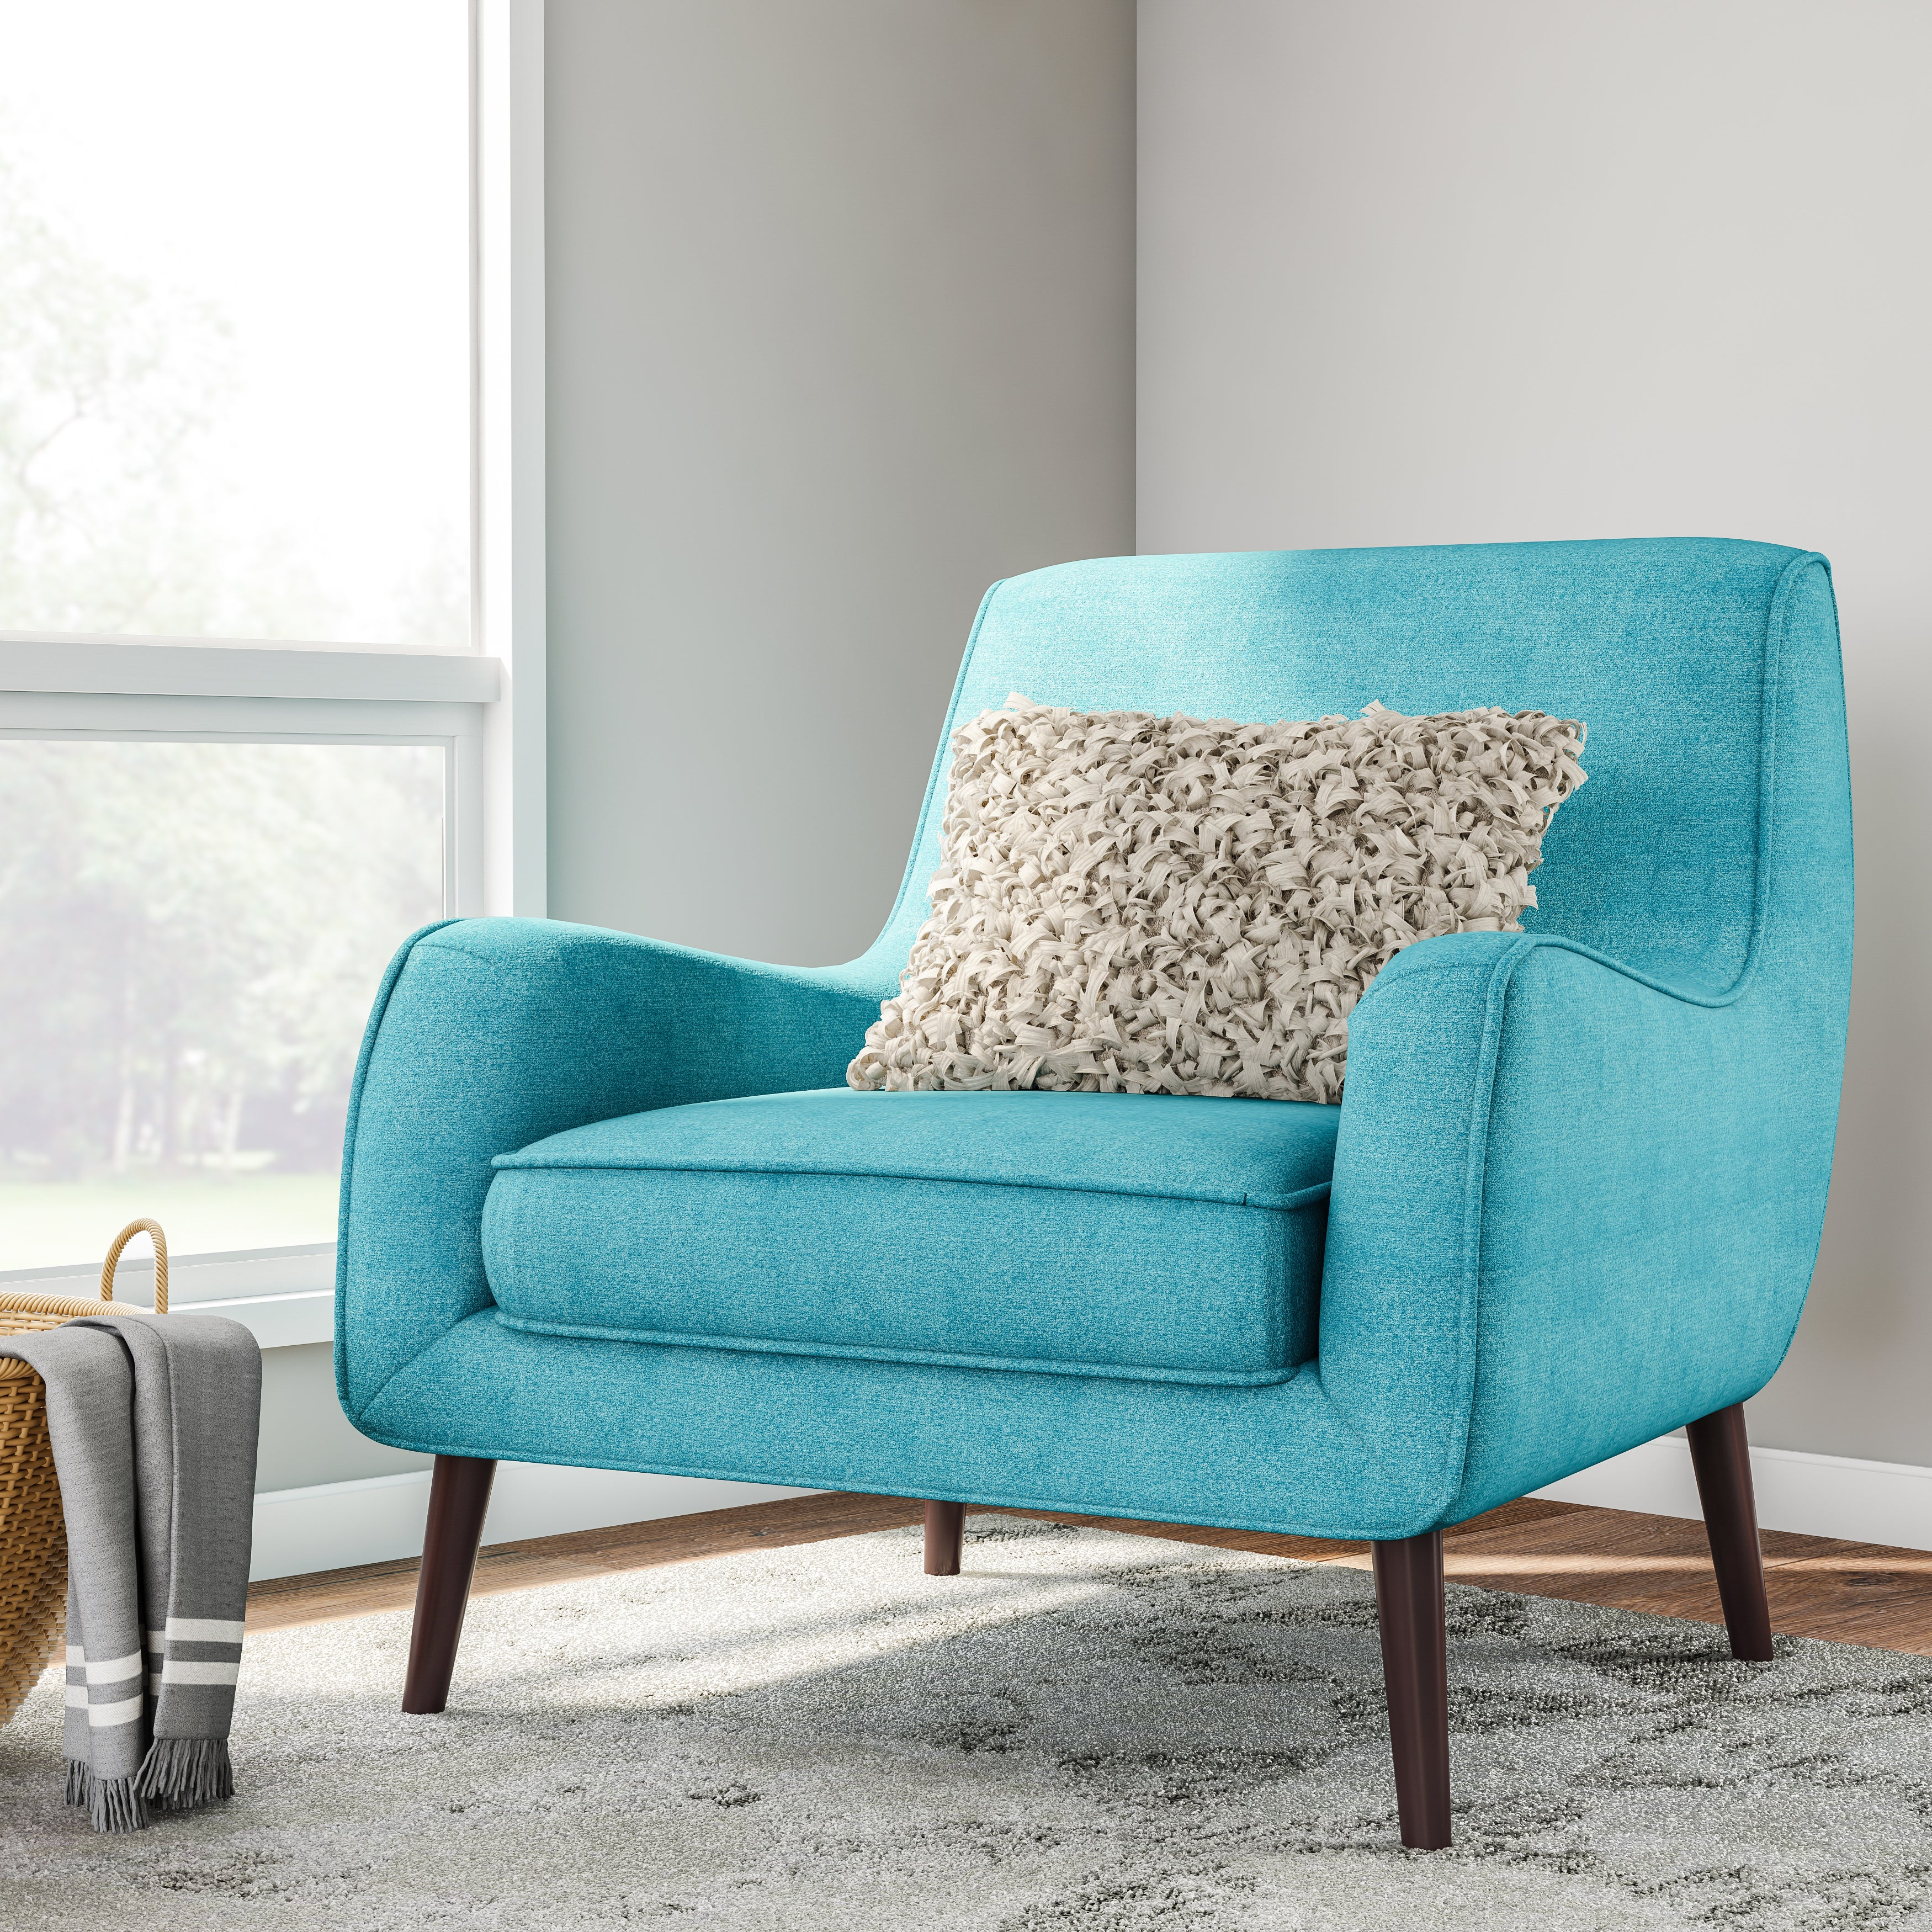 Delicieux Clearance. Oxford Teal Modern Accent Chair